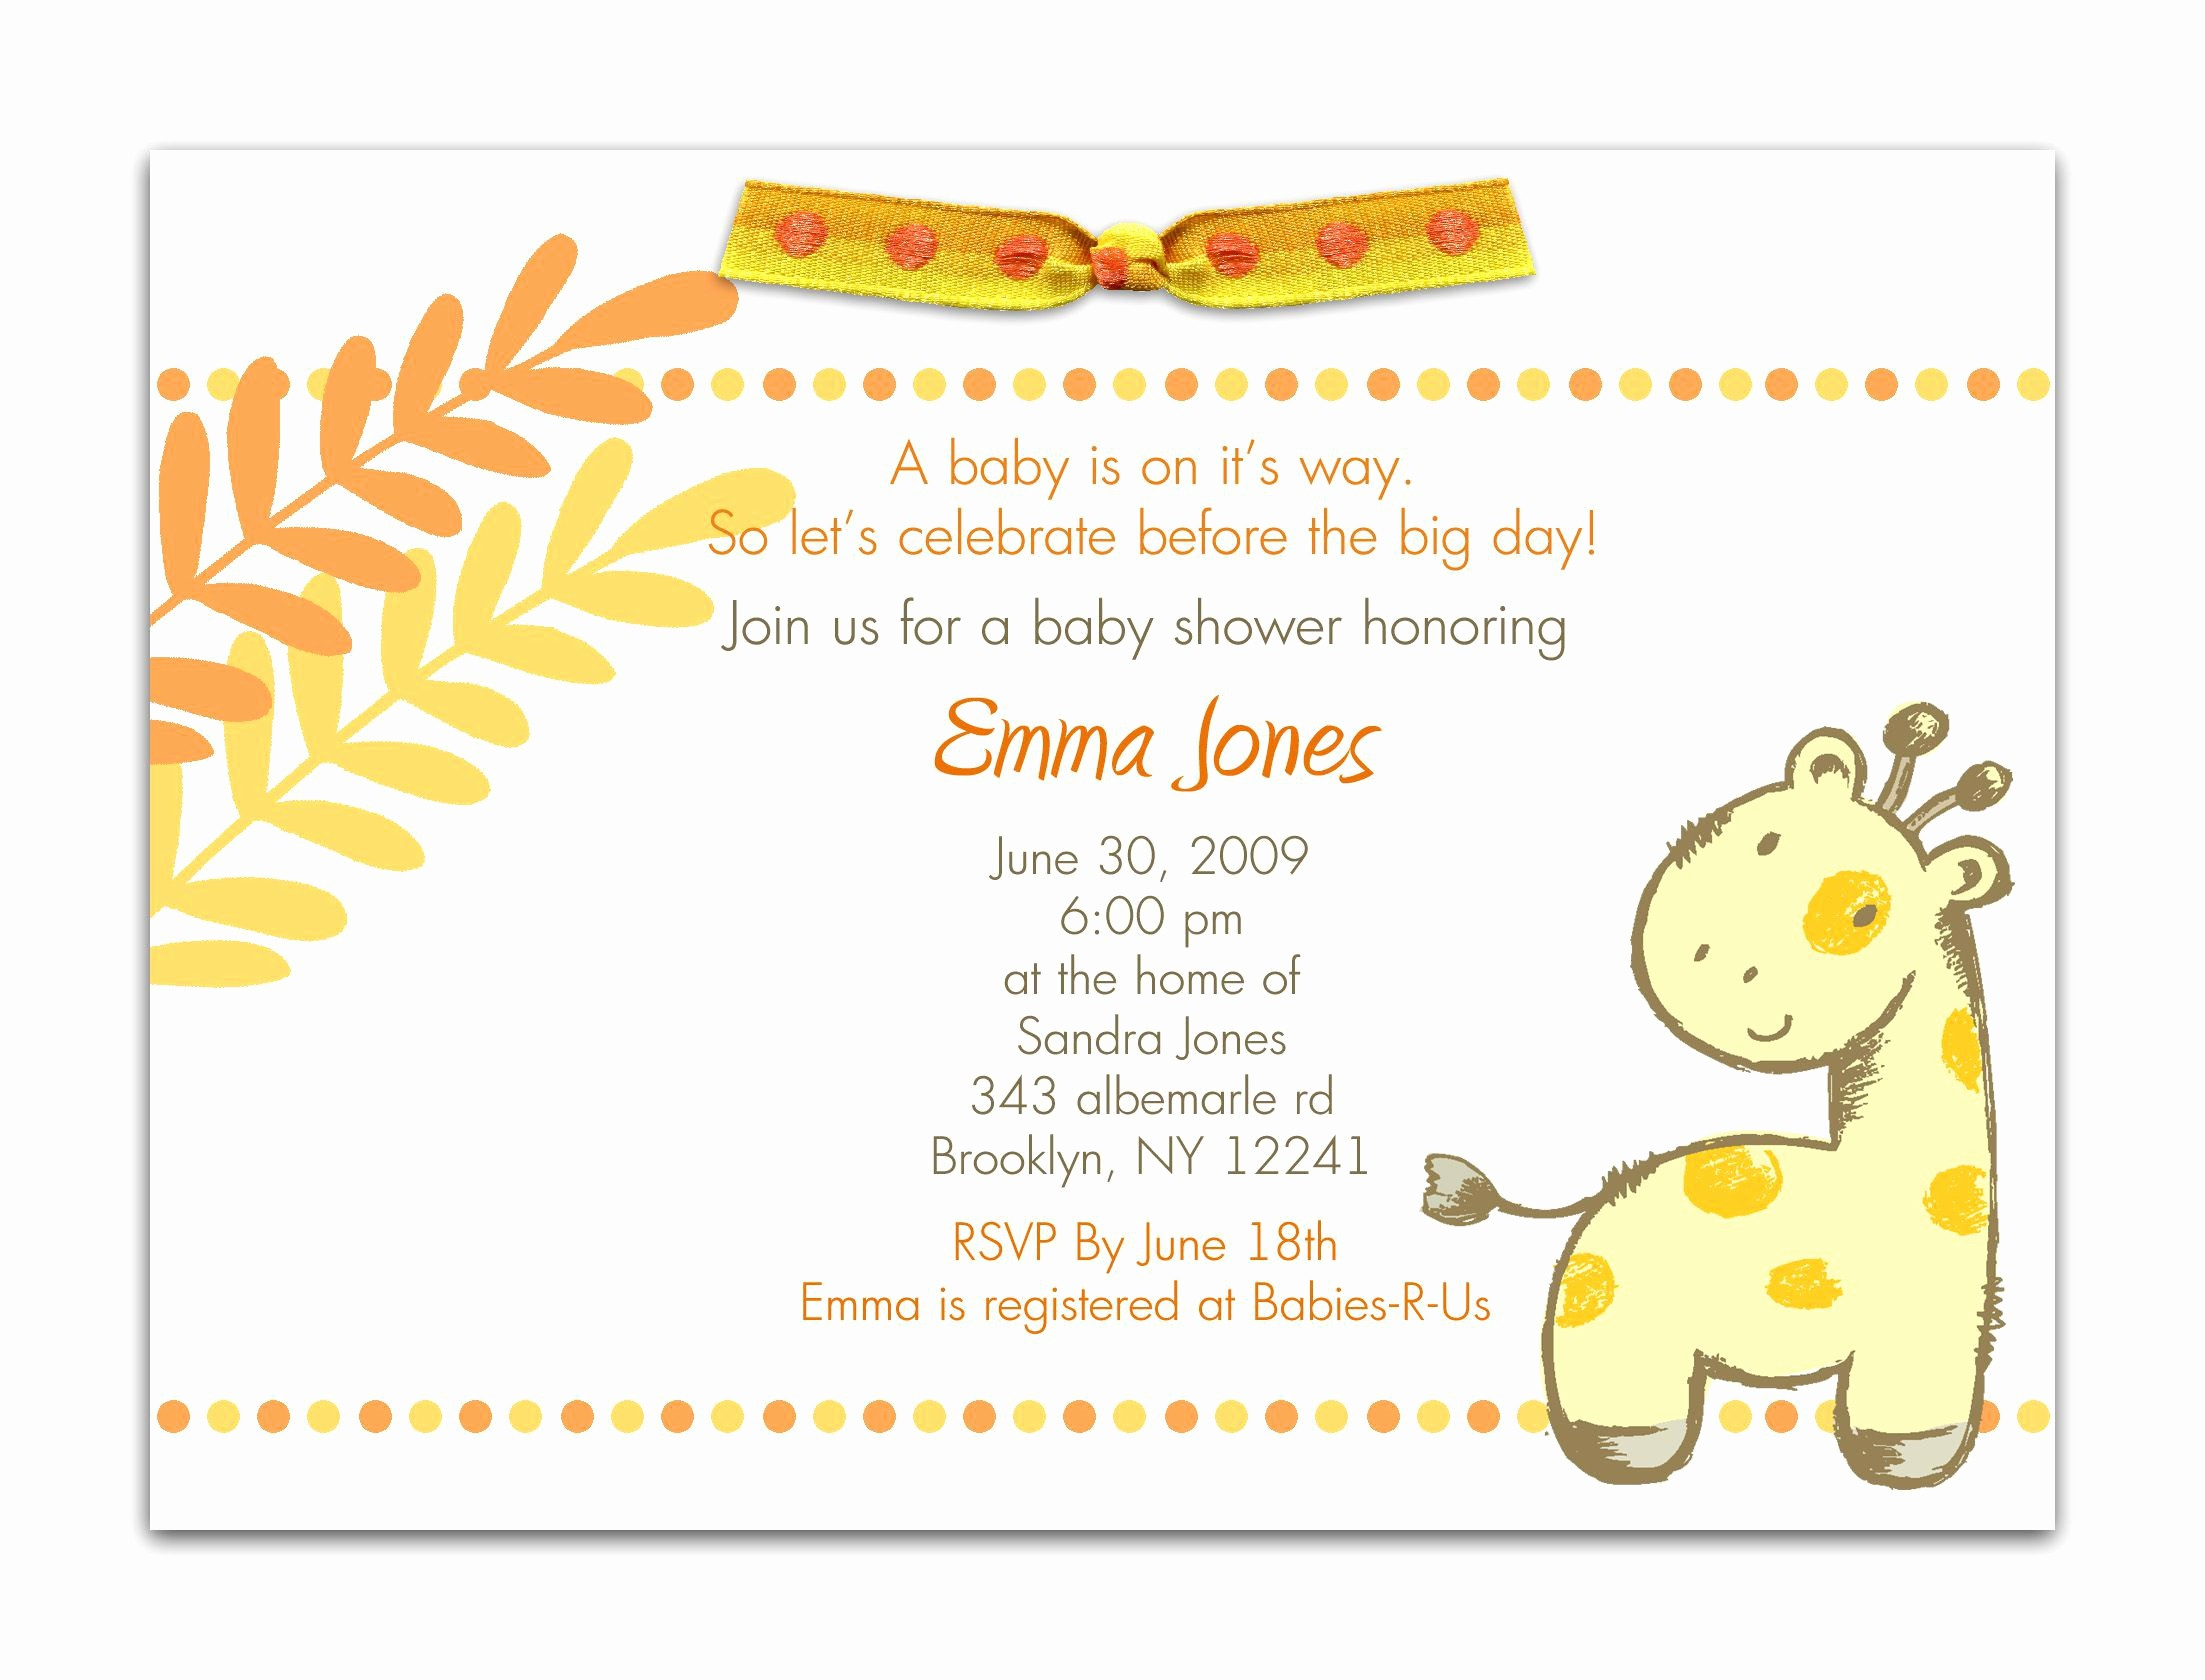 Baby Shower Invitation List Template New Baby Shower Invitation Baby Shower Invitations Templates